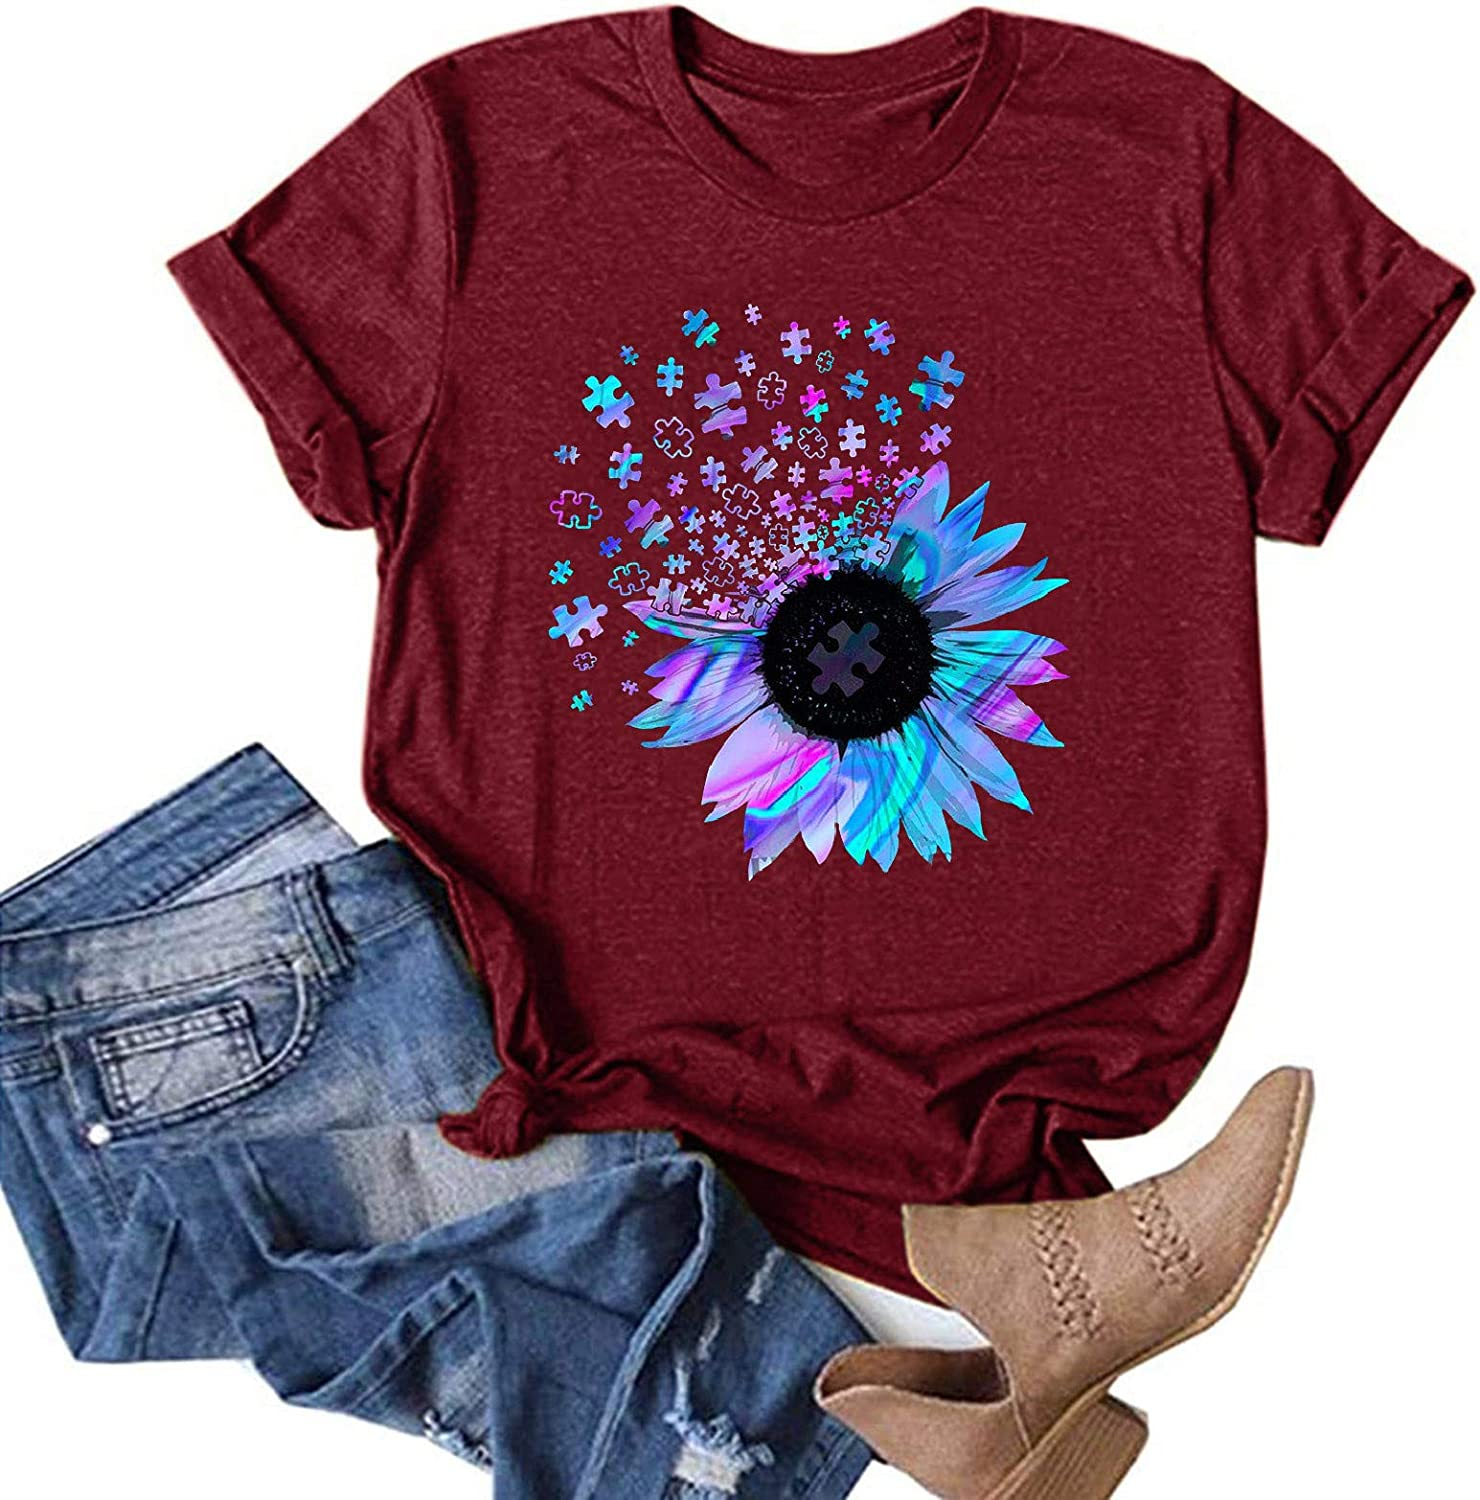 Beppter Women Summer Tops Trendy Casual Short Sleeve Sunflower Graphic Tees Workout Shirts Loose Fit Blouses Tshirts(C-Wine,3X-Large)